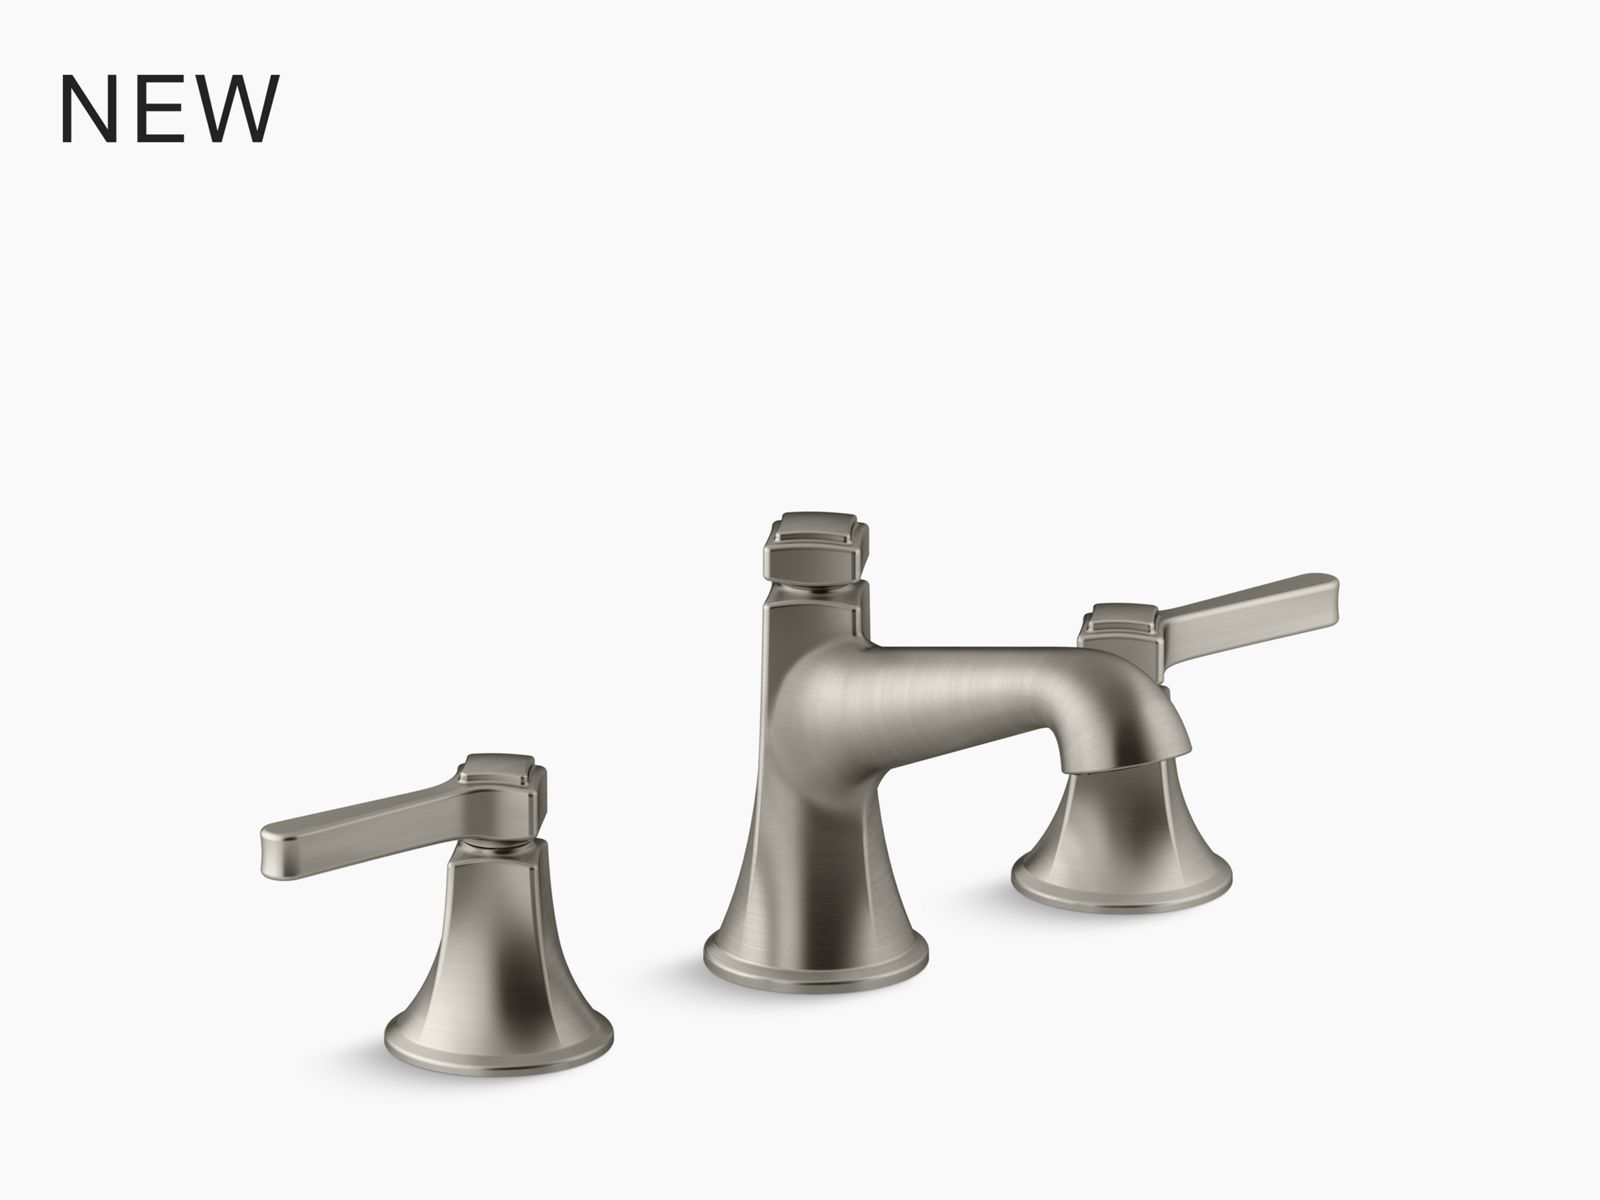 touchless kitchen faucet with pull down